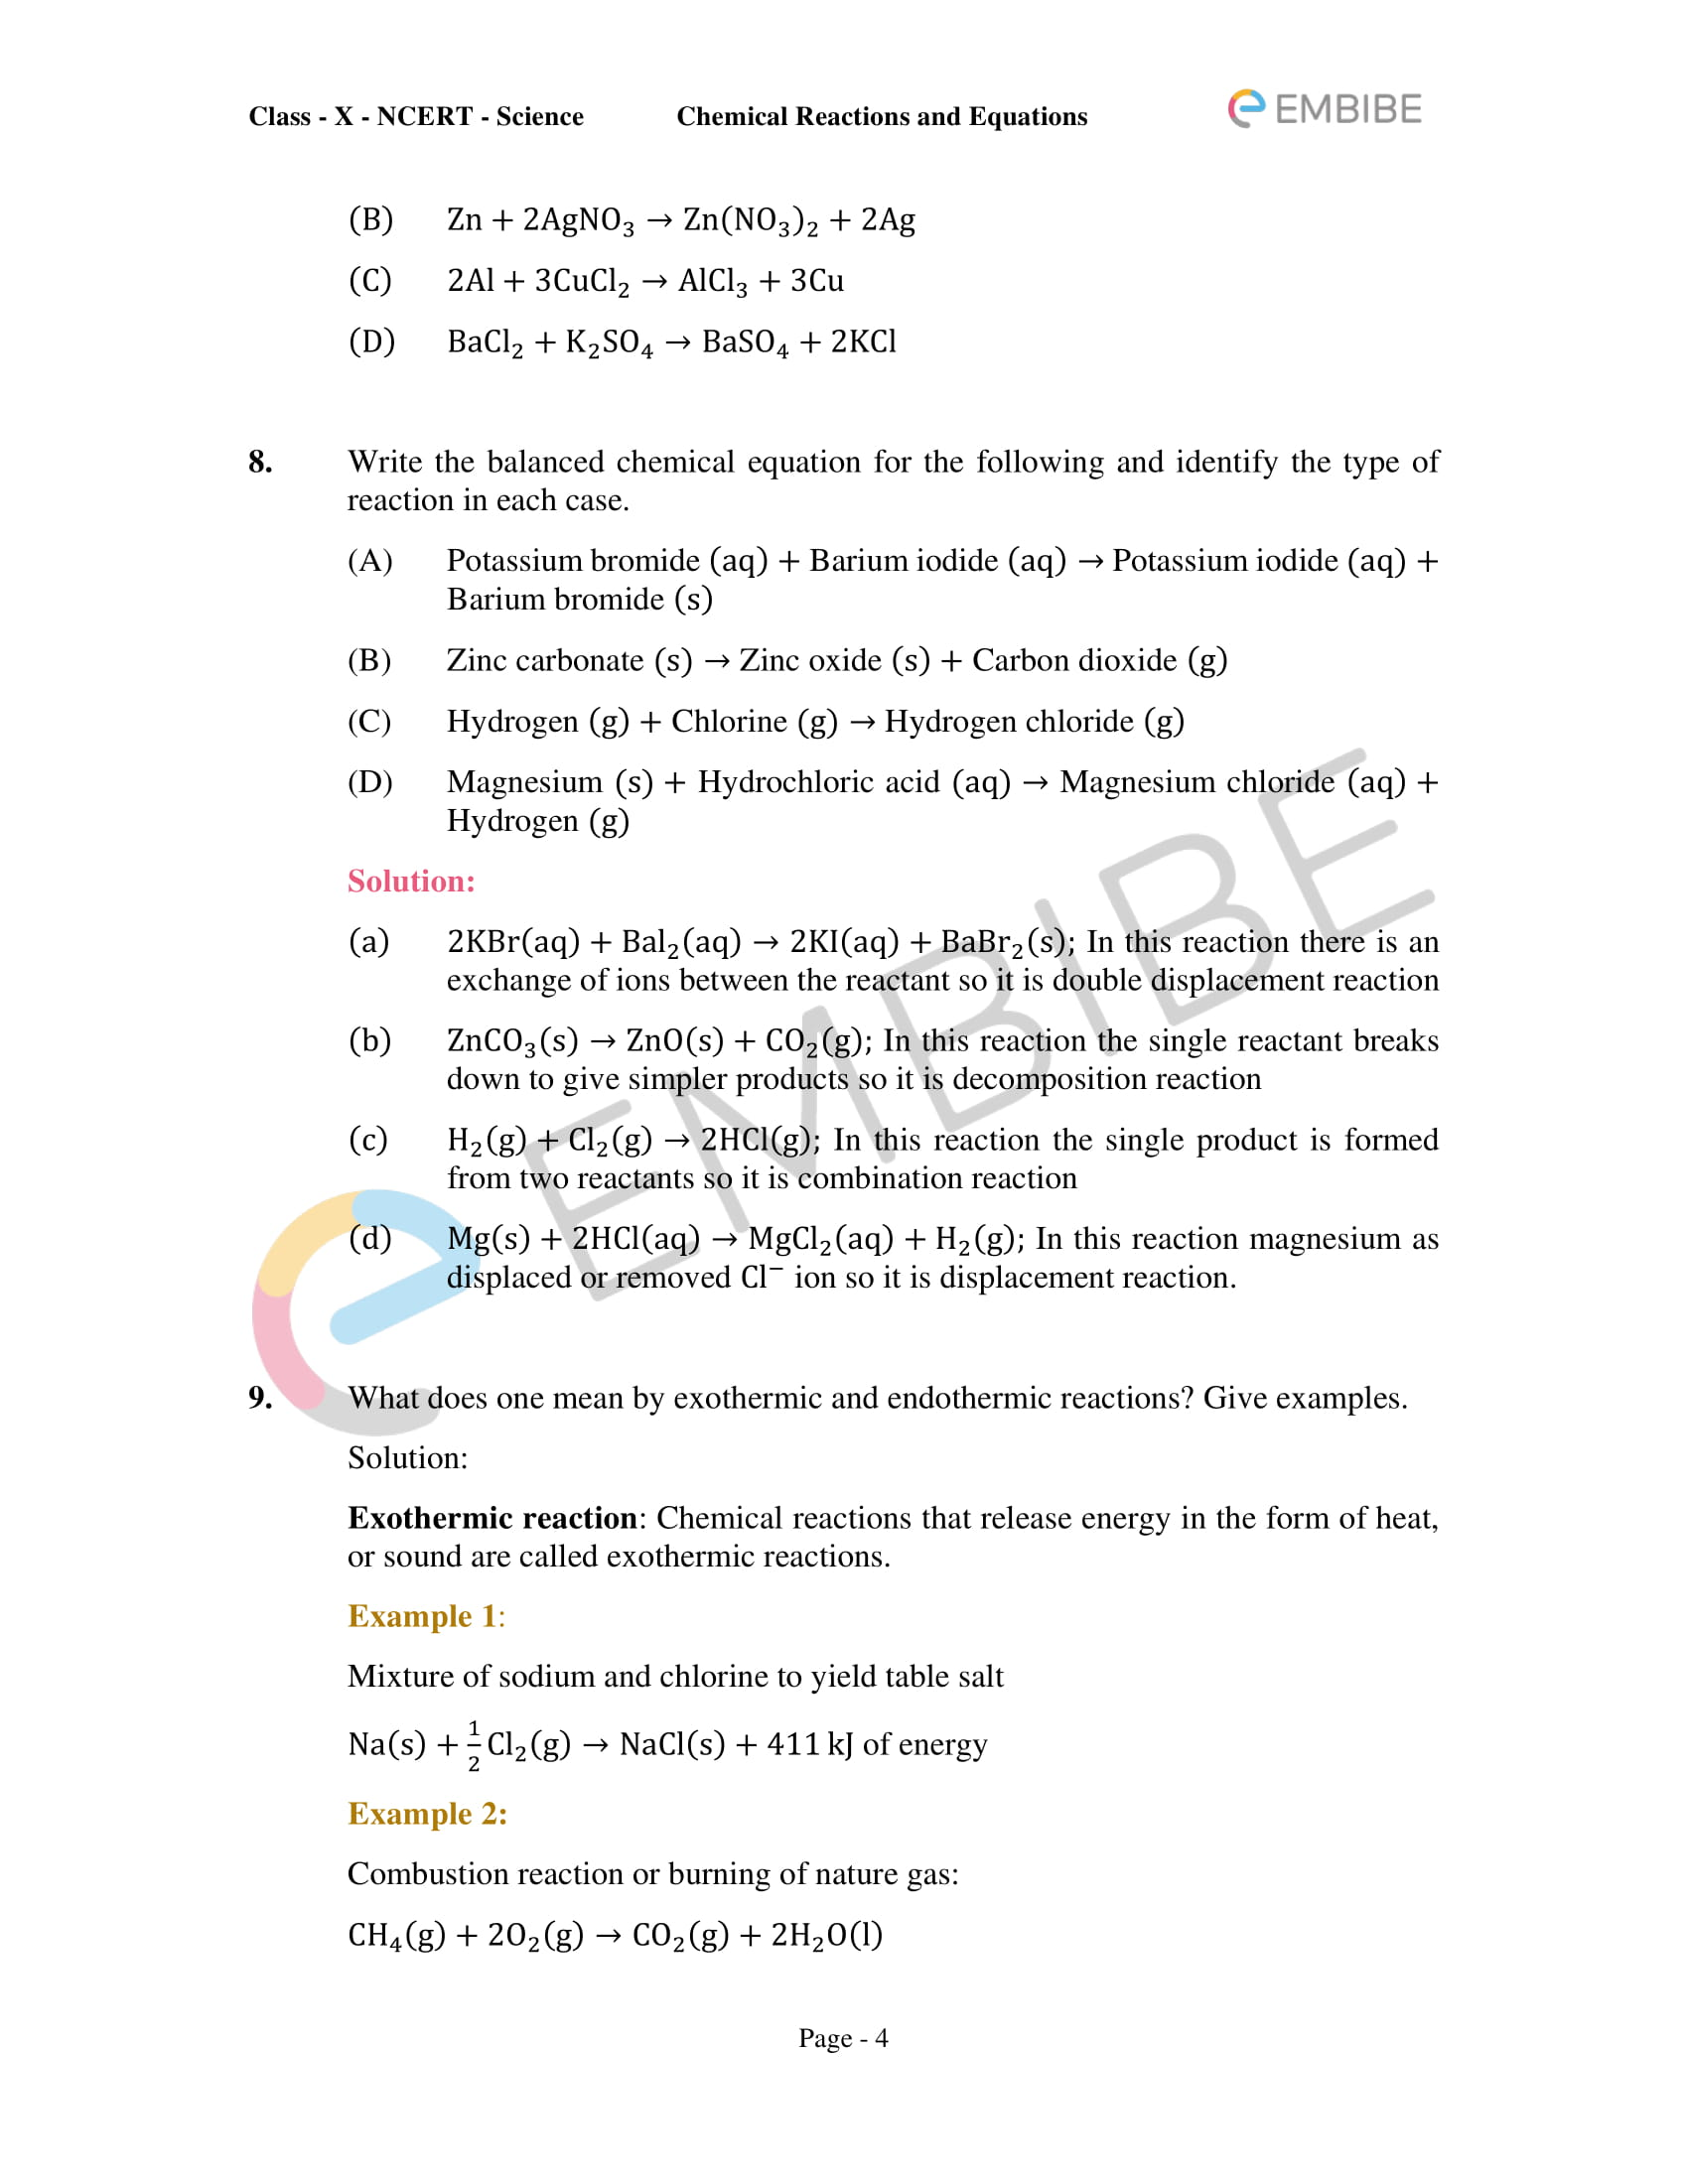 CBSE NCERT Solutions for Class 10 Science Chapter 1: Chemical Reactions And Equations-4